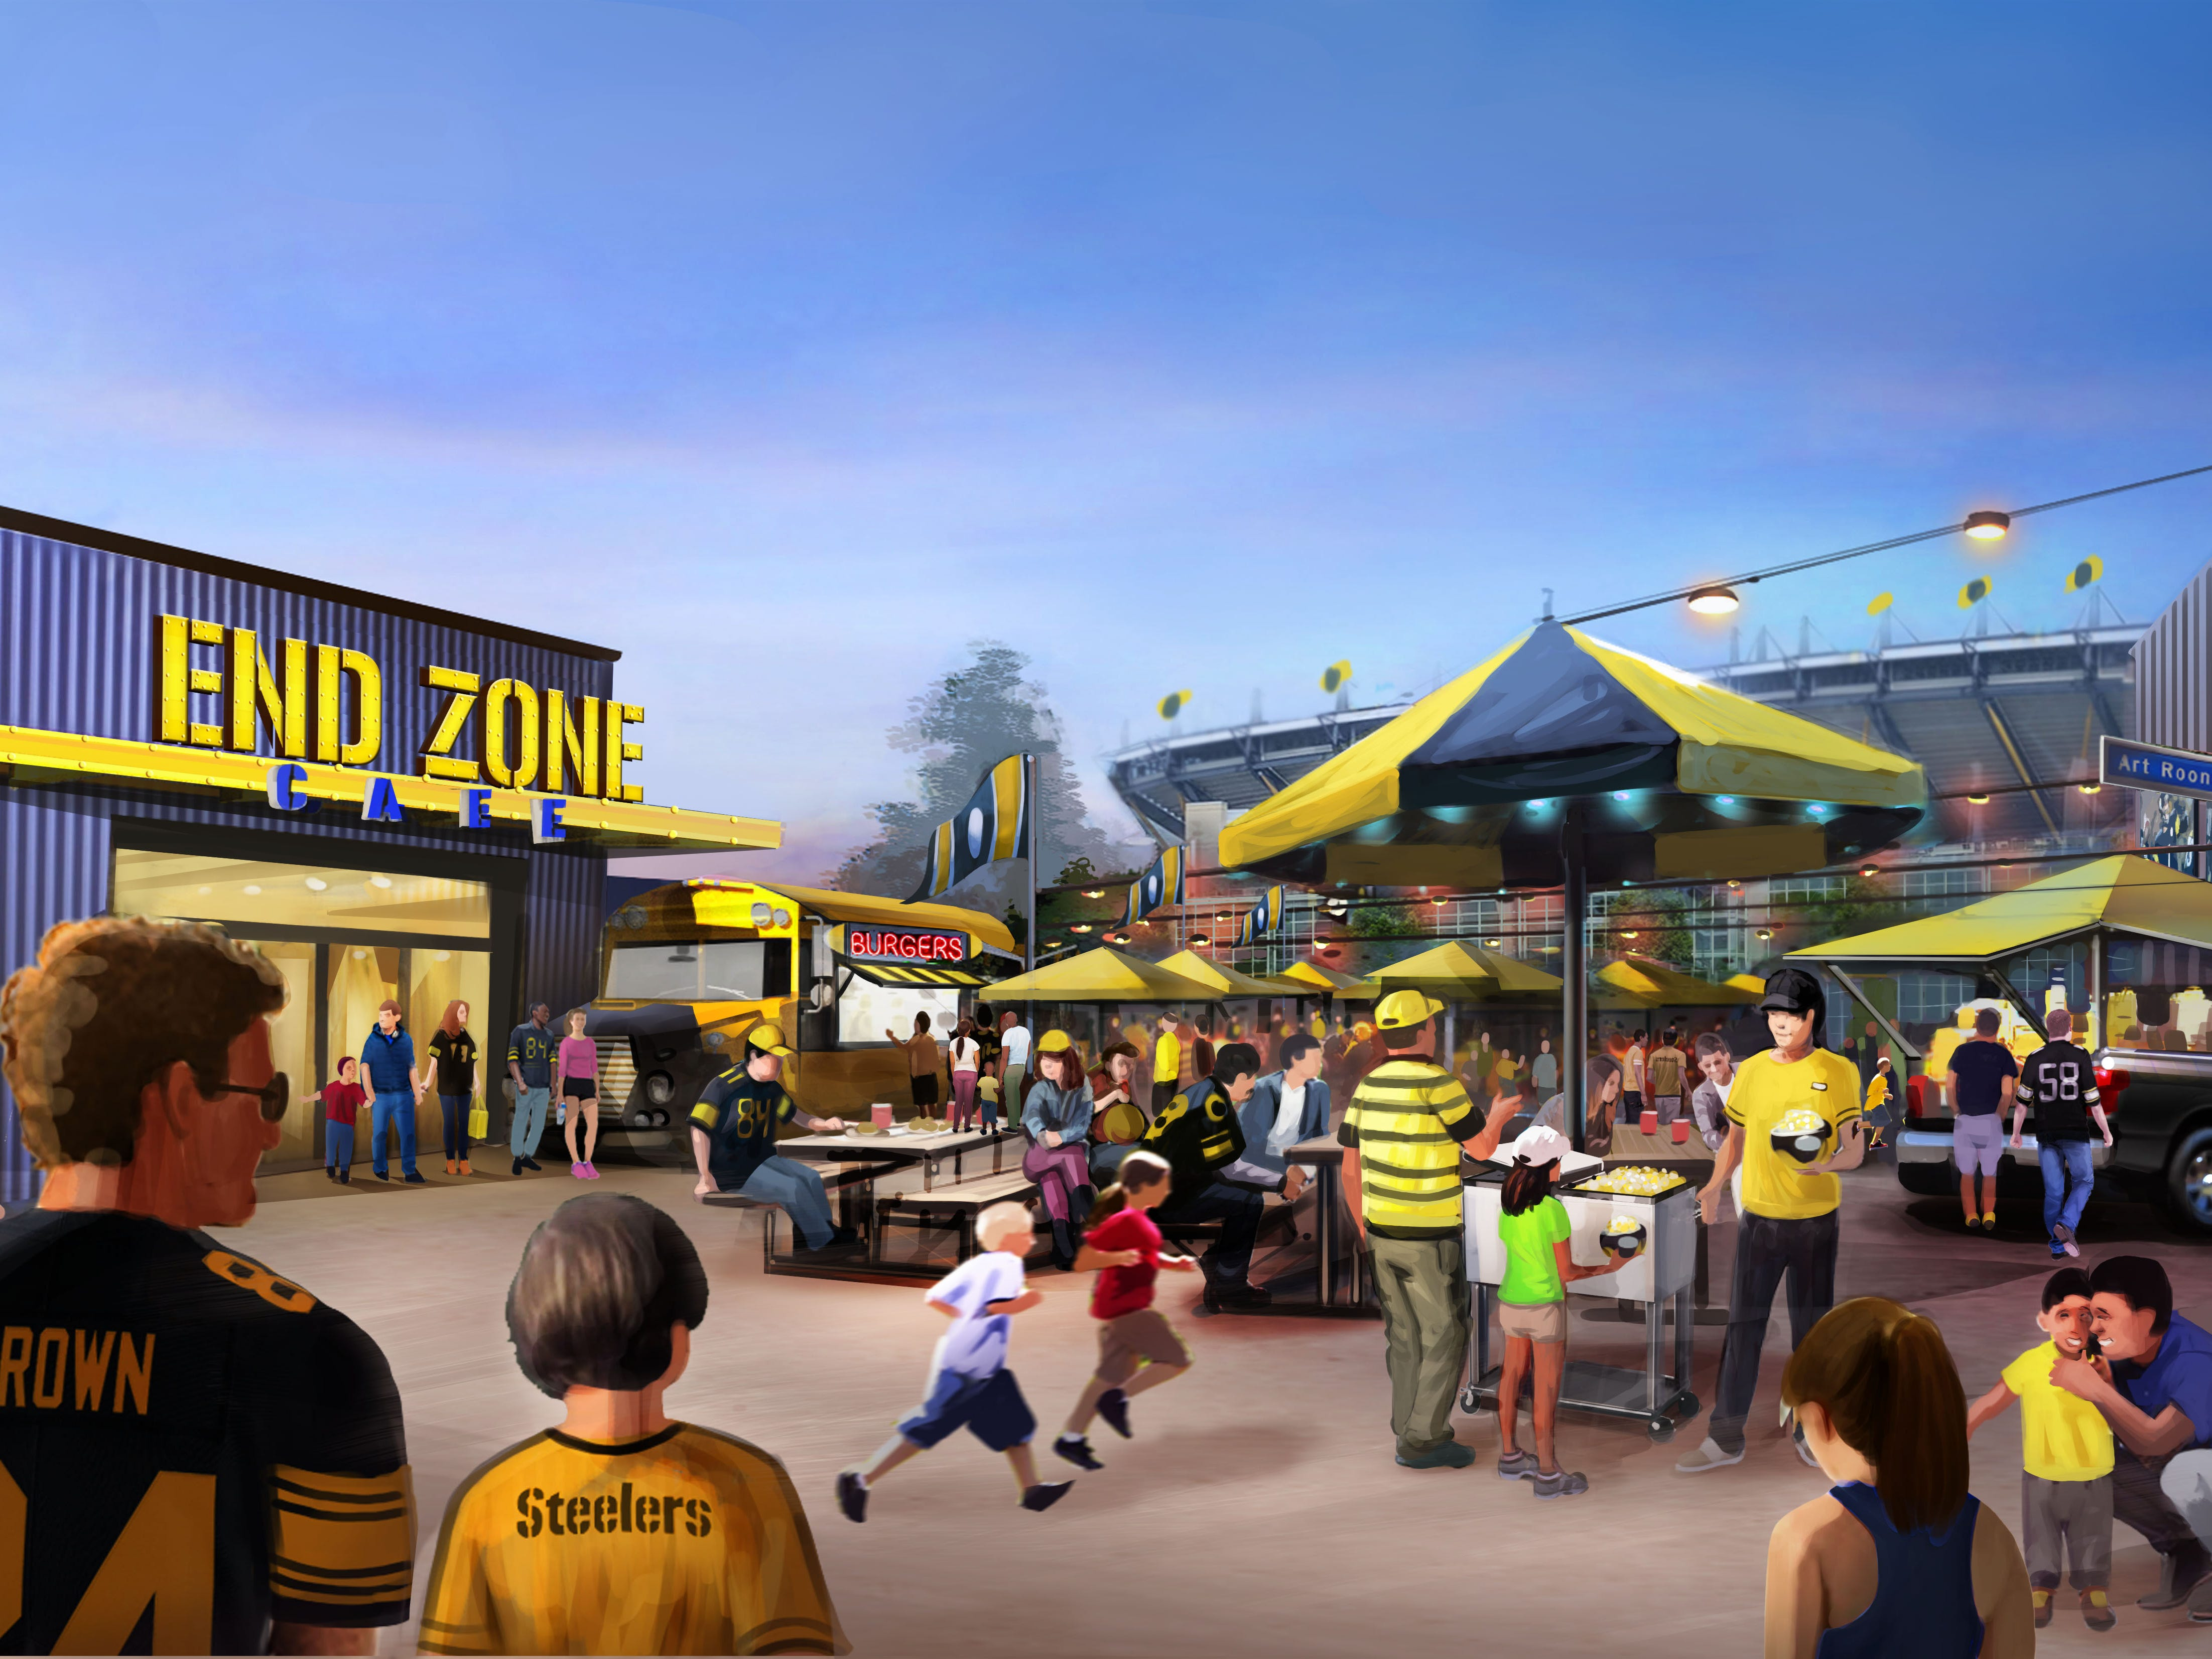 The Tailgate Patio will serve up the kind of grub that fans chow down on in the stadium's parking lot.